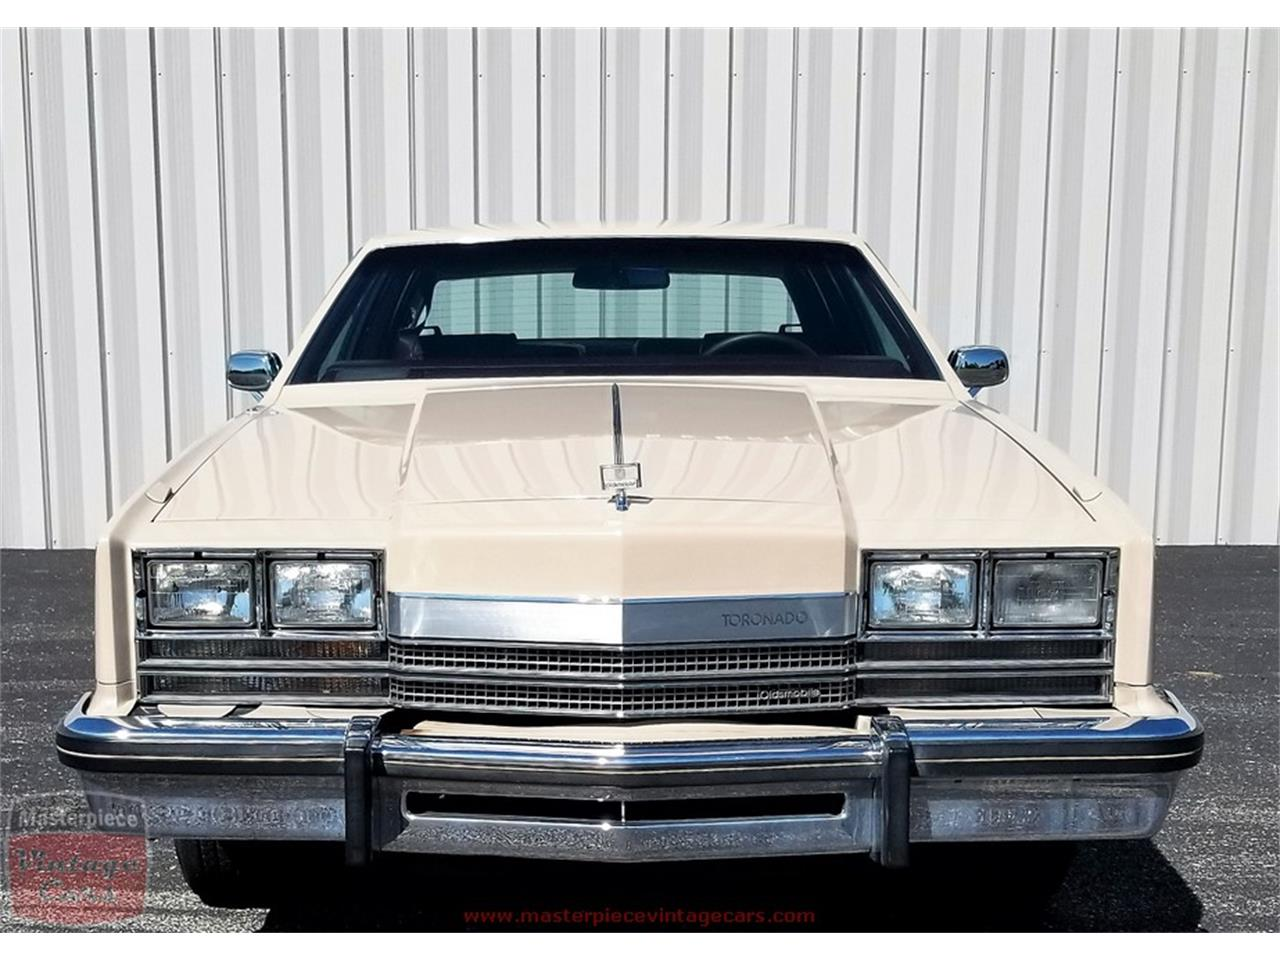 Large Picture of '85 Oldsmobile Toronado located in Whiteland Indiana Offered by Masterpiece Vintage Cars - Q4ZA